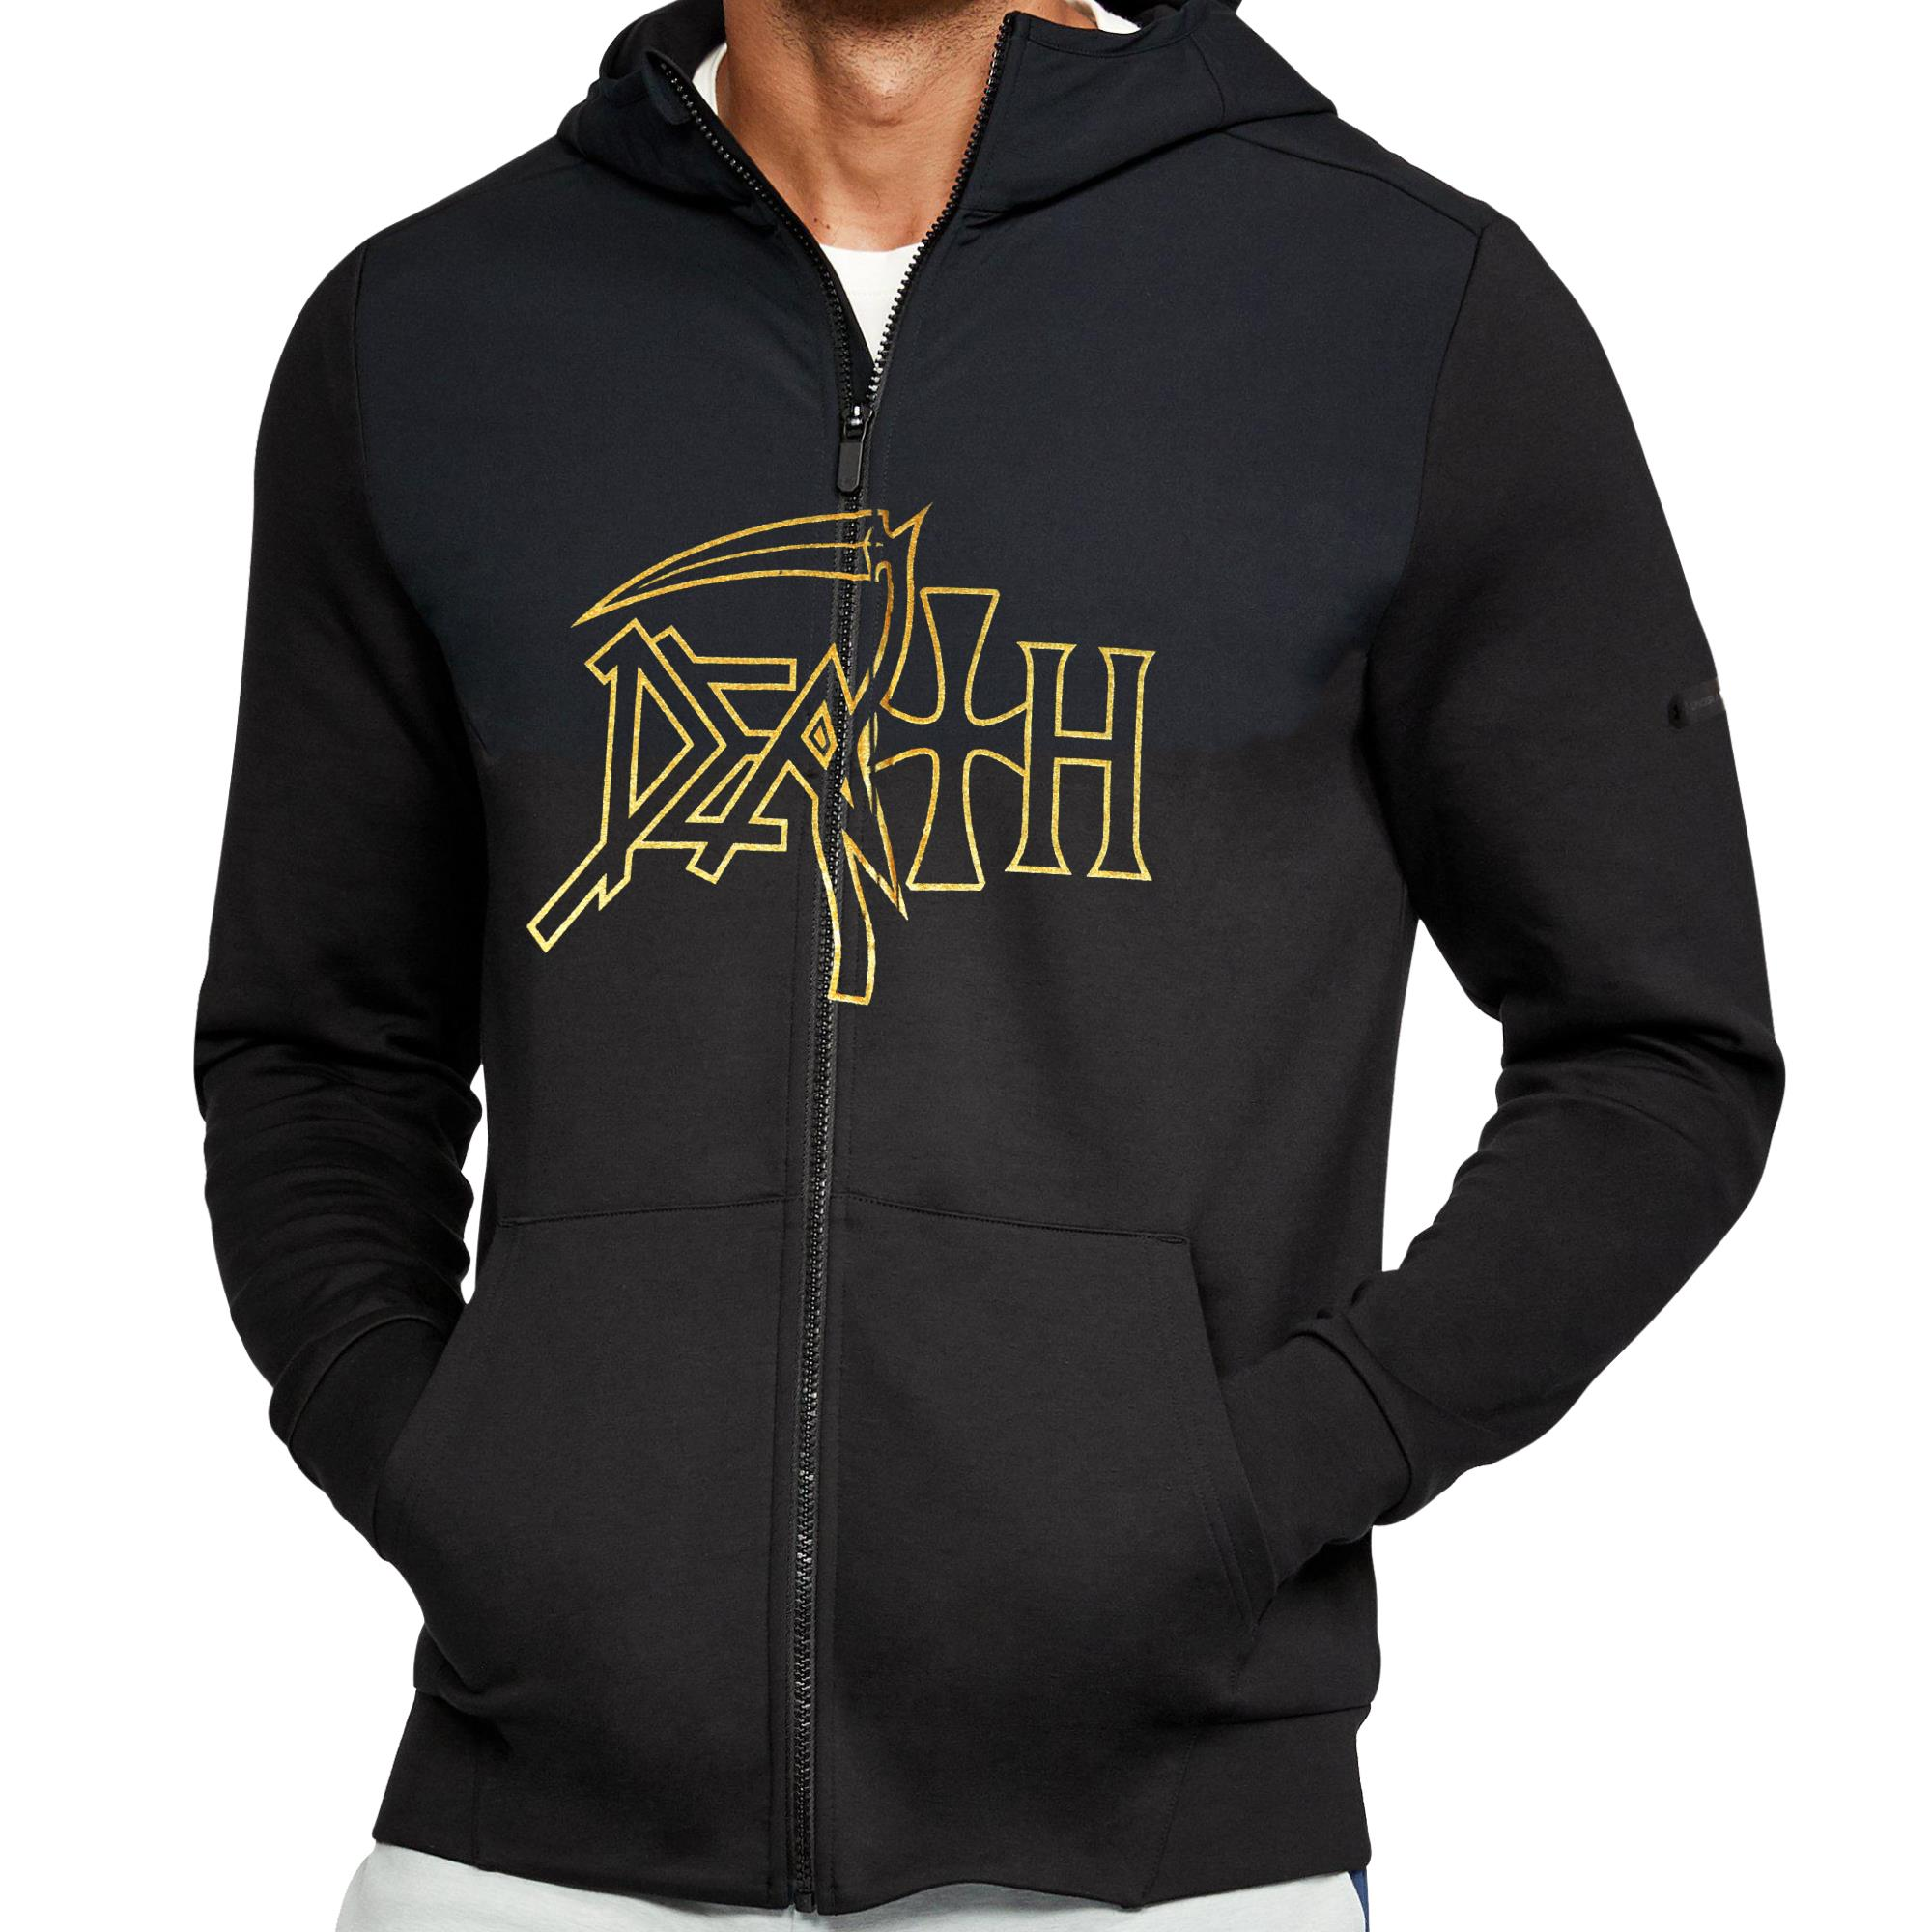 The Sound Of Perseverance Zip Hoodie